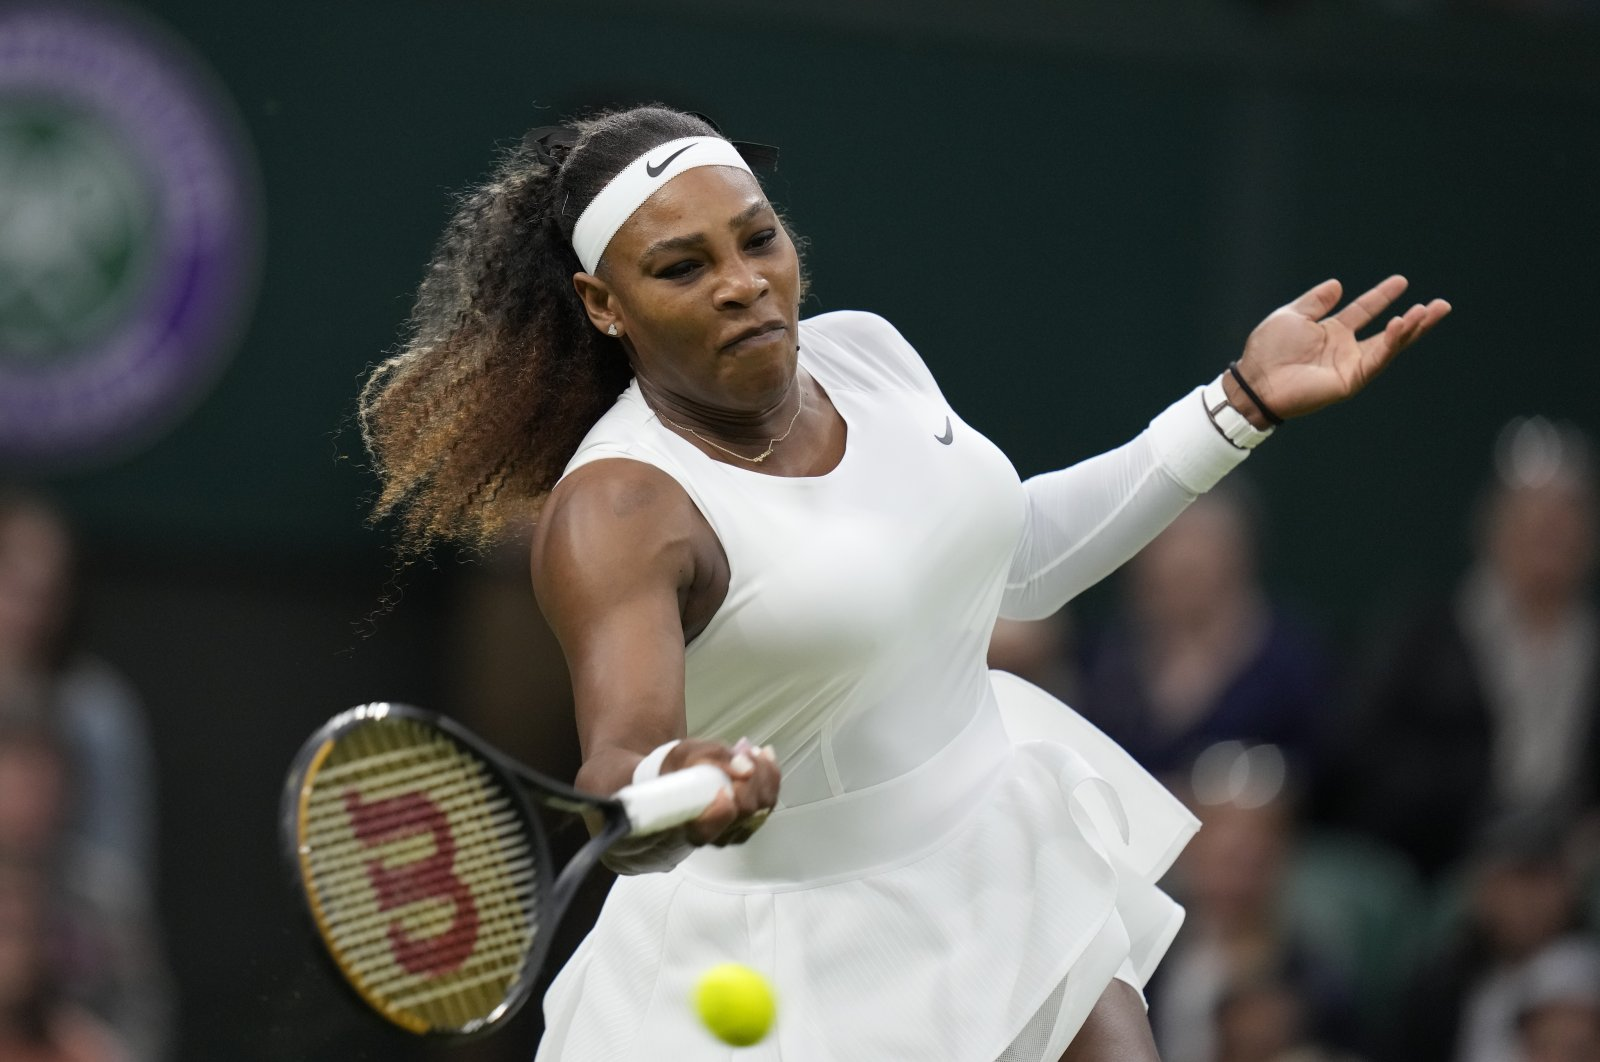 Serena Williams plays a return to Aliaksandra Sasnovich at a Wimbledon women's singles first-round match in London, England, June 29, 2021. (AP Photo)